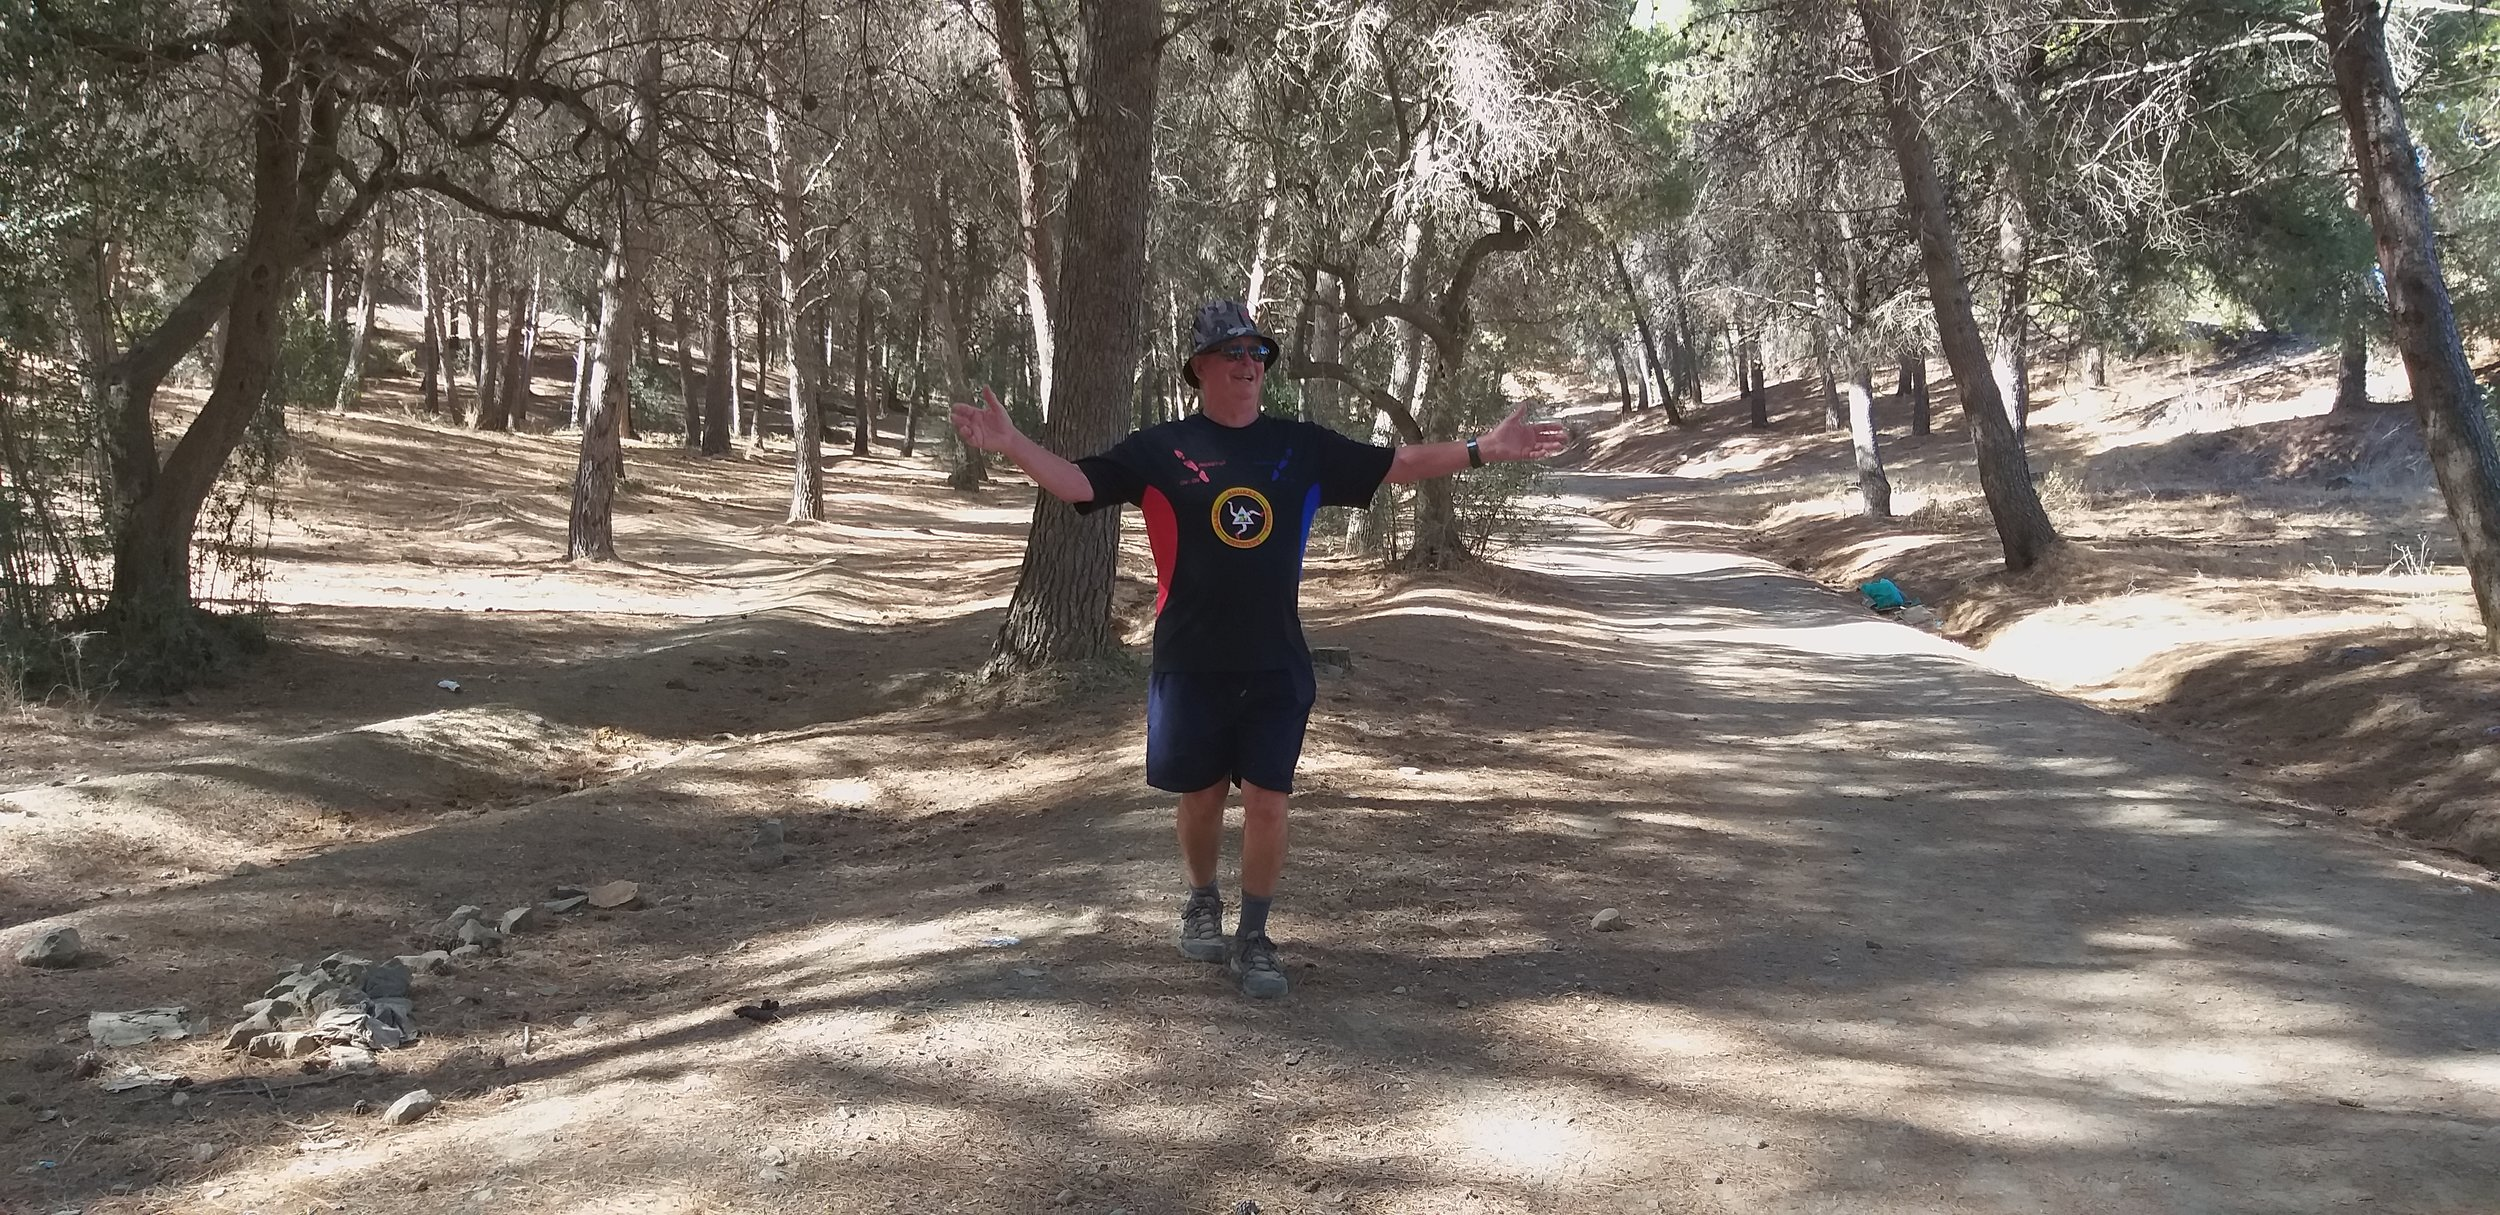 Mijas H3 - Hash Flash GC - Run 1650 - 28 Jul 2019 - Photo  15.jpg